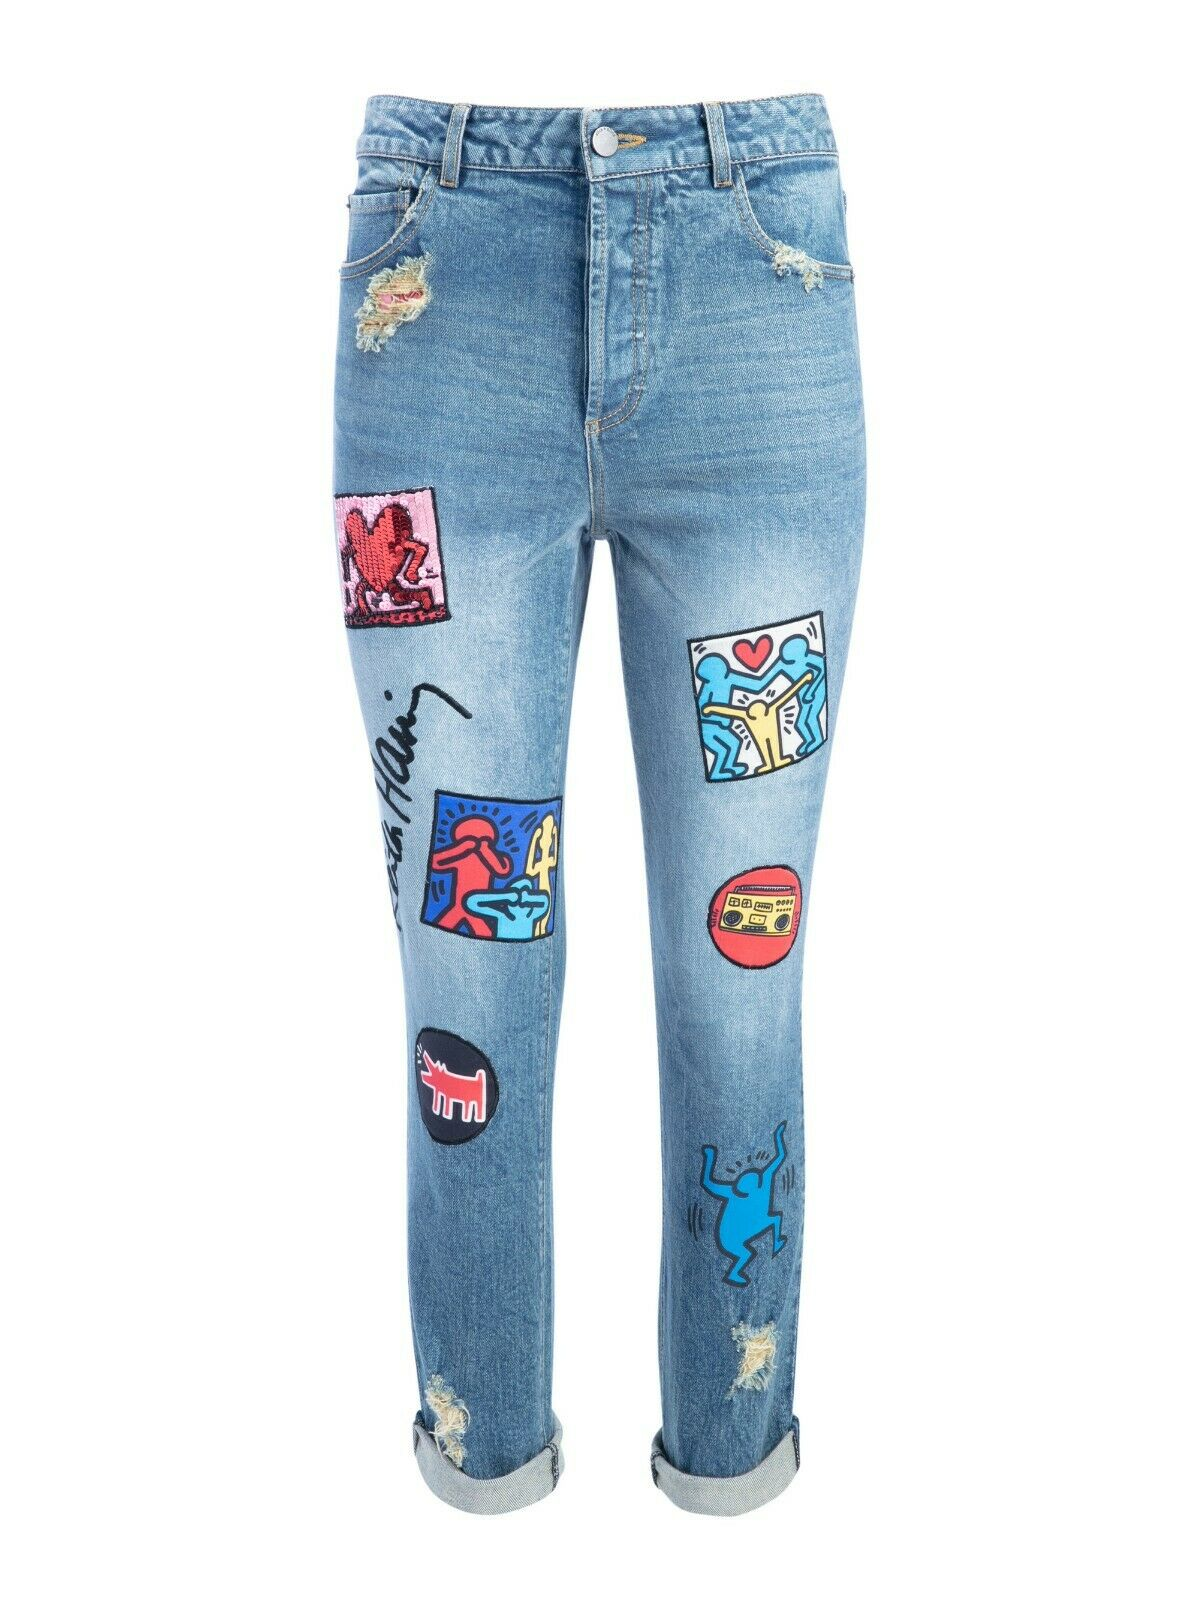 KEITH HARING X AO BYRON JEAN ALICE & OLIVIA Sz 28 SOLD OUT EVERYWHERE RET  595